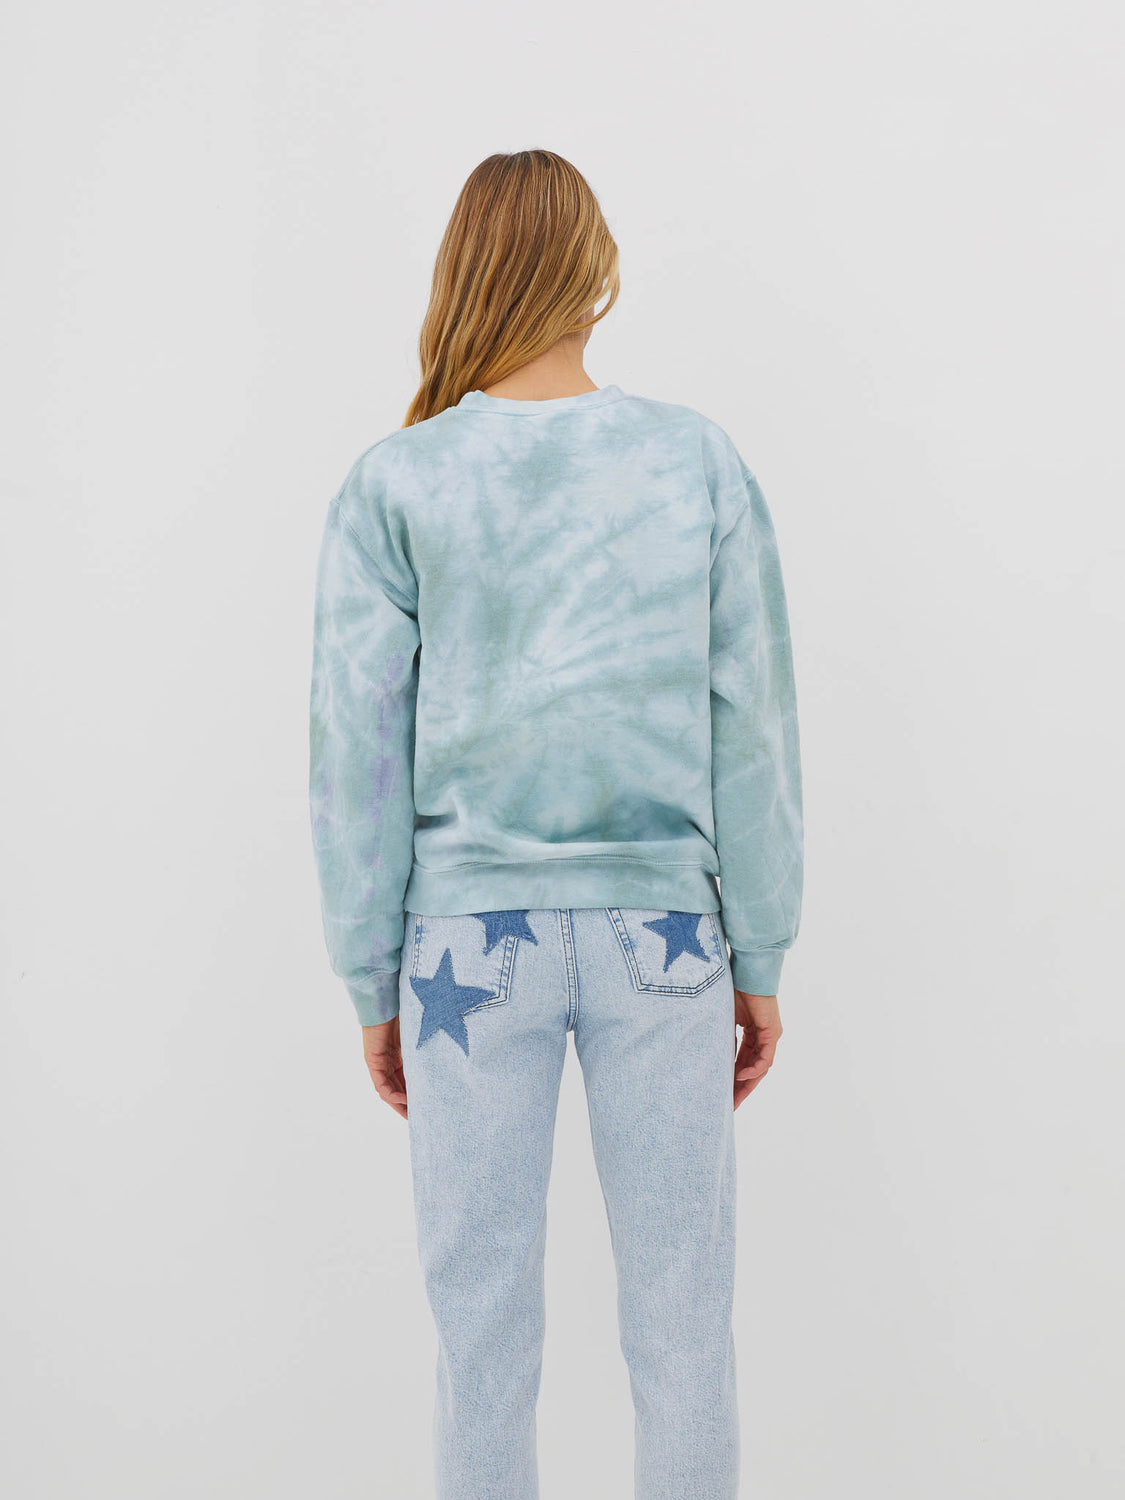 Green Dye Sweatshirt